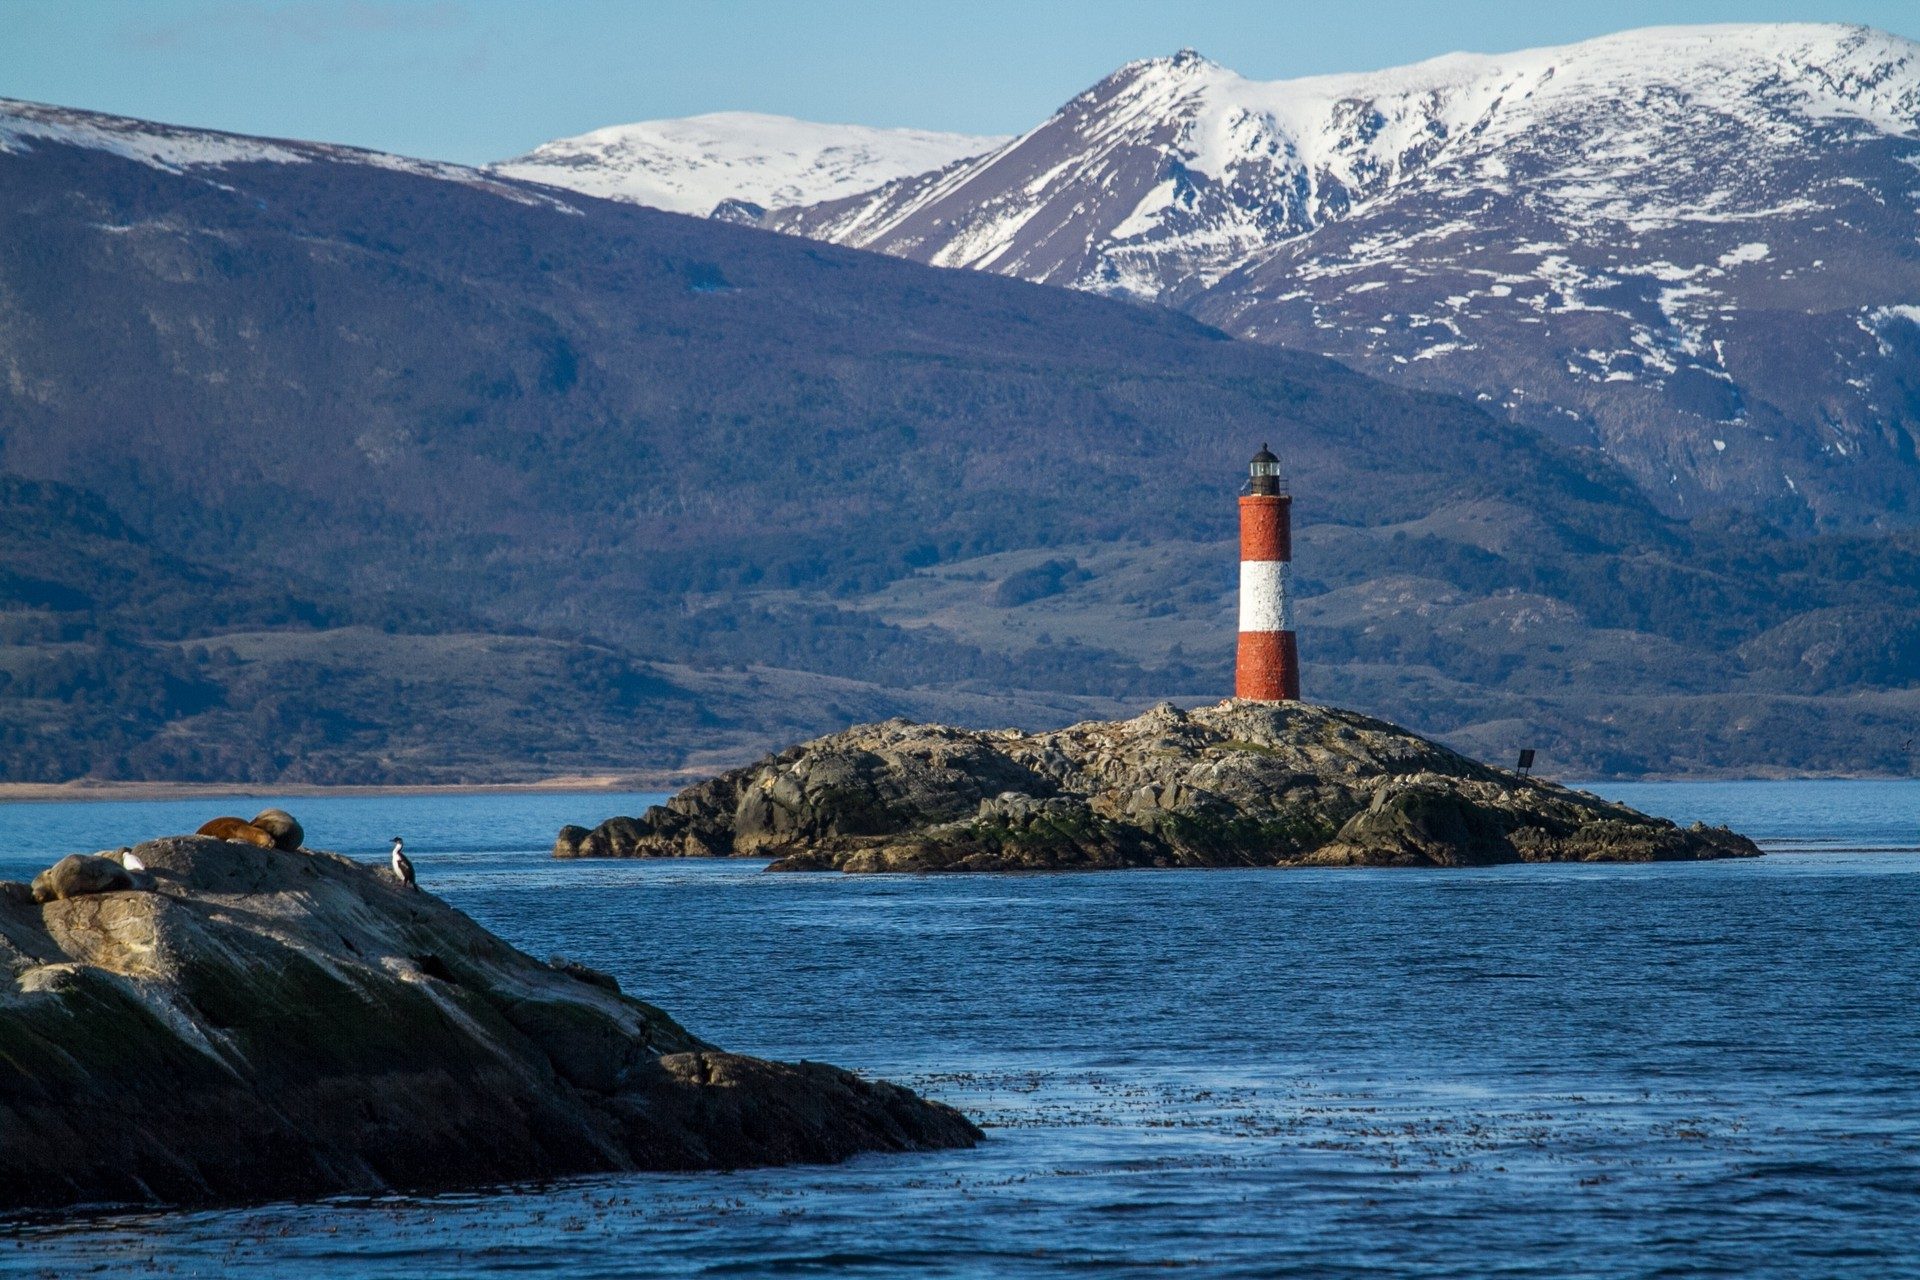 Lighthouse near Ushuaia, Argentina